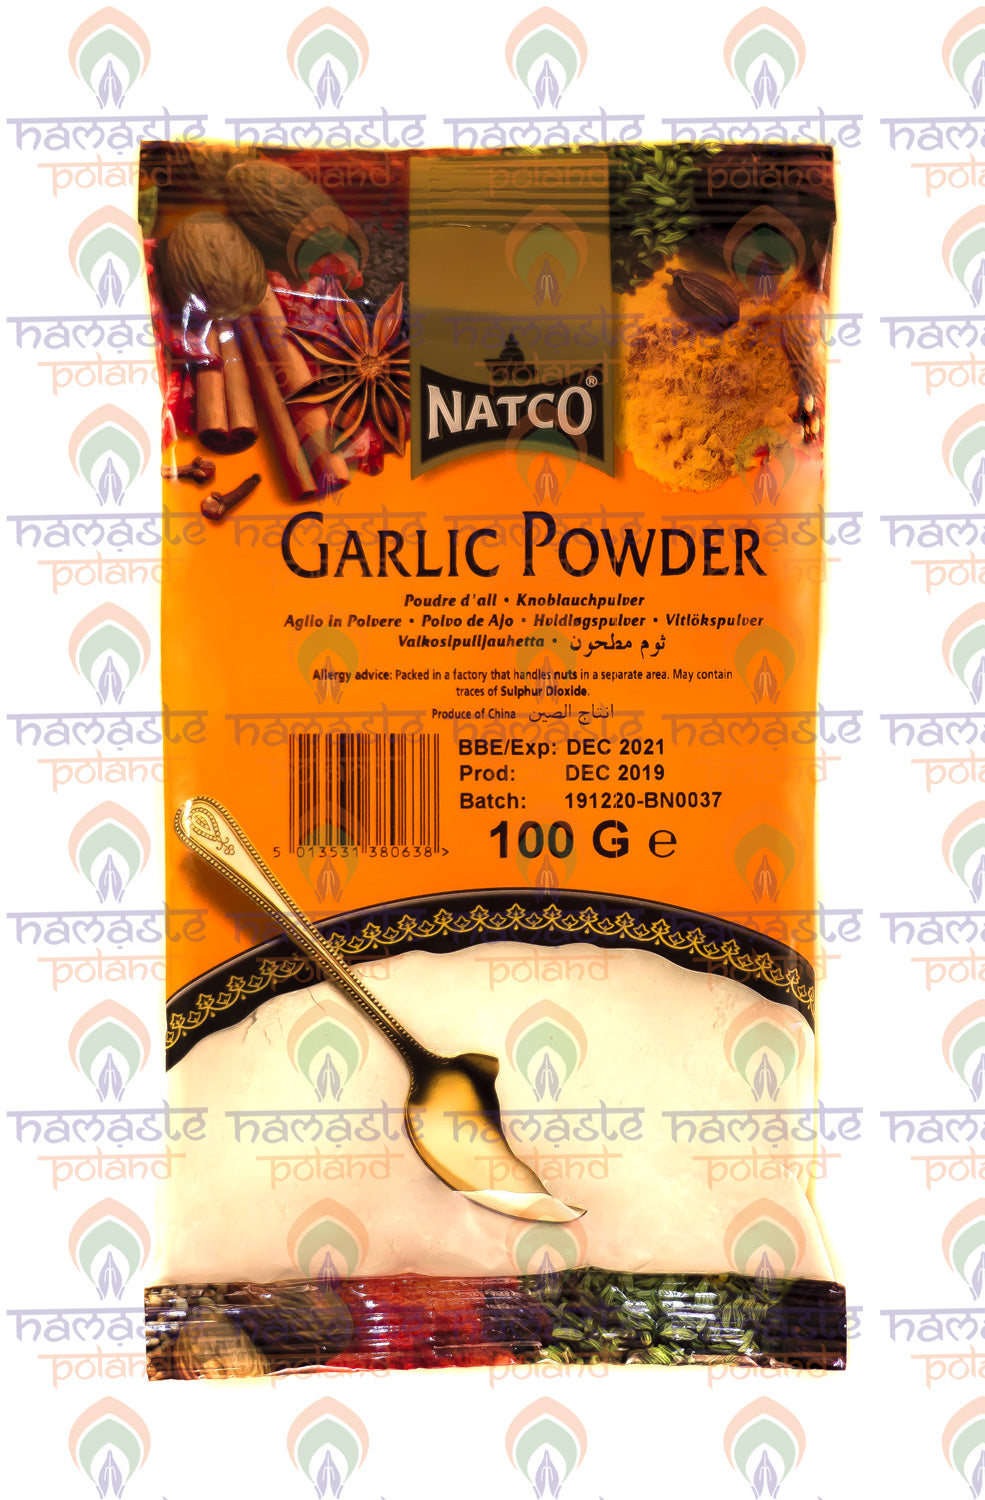 Natco Garlic Powder 100g